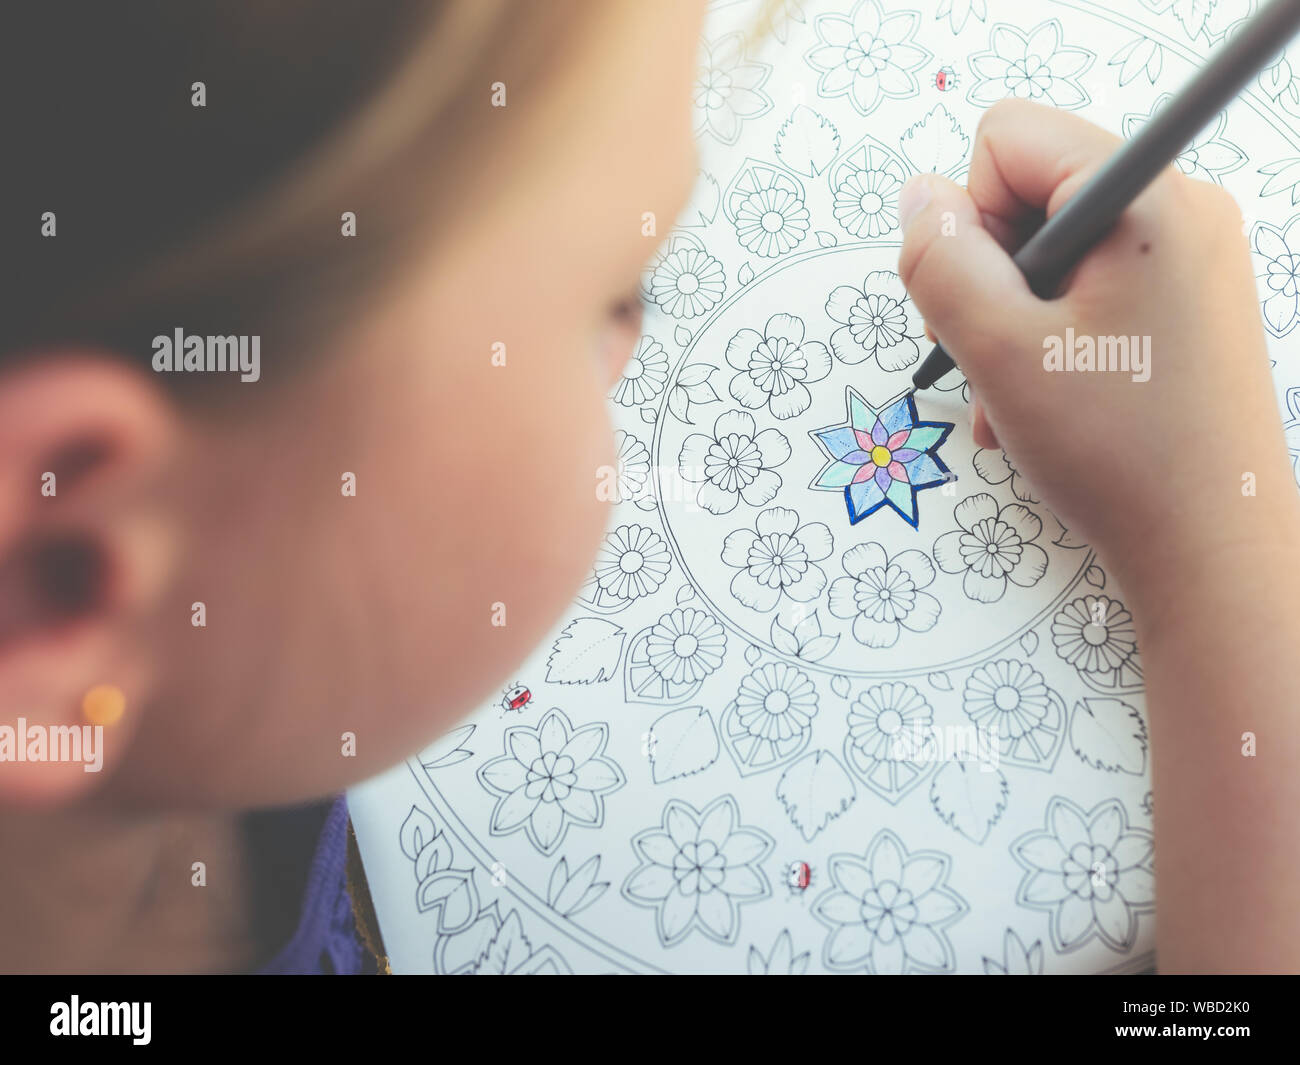 Cute Little Girl Outline Drawing High Resolution Stock Photography And Images Alamy